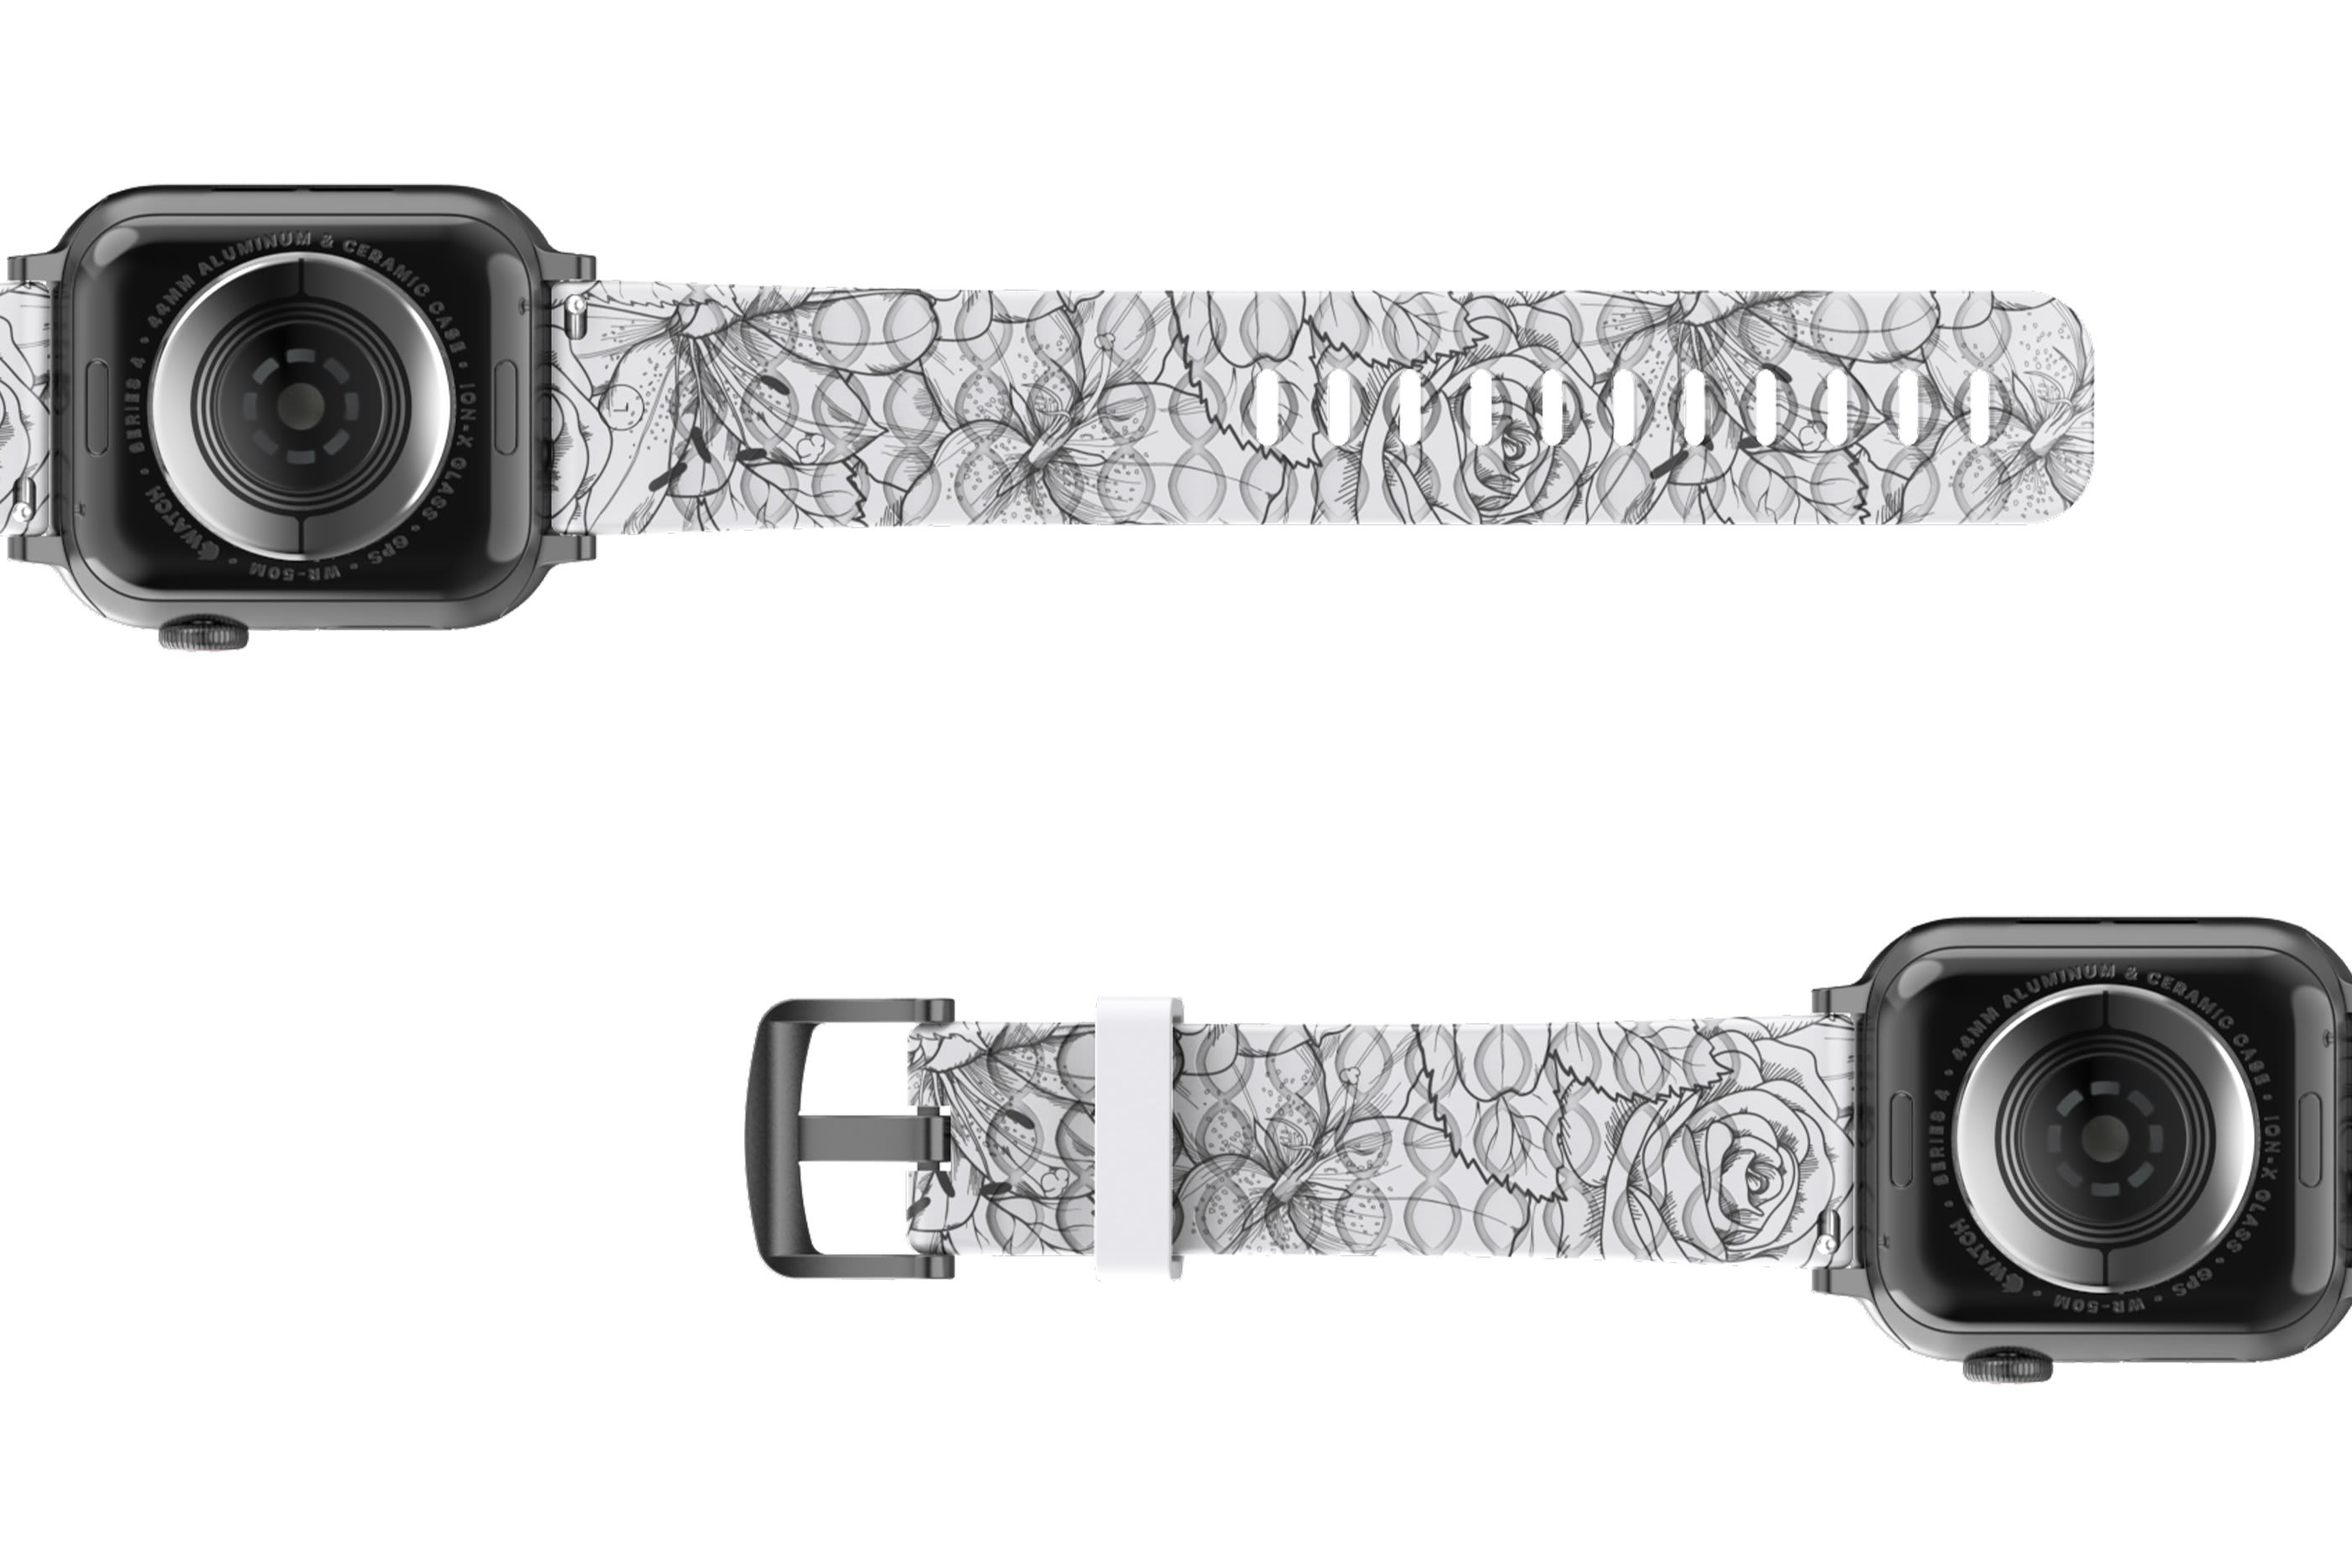 Winter Rose Apple Watch Band with gray hardware viewed bottom up